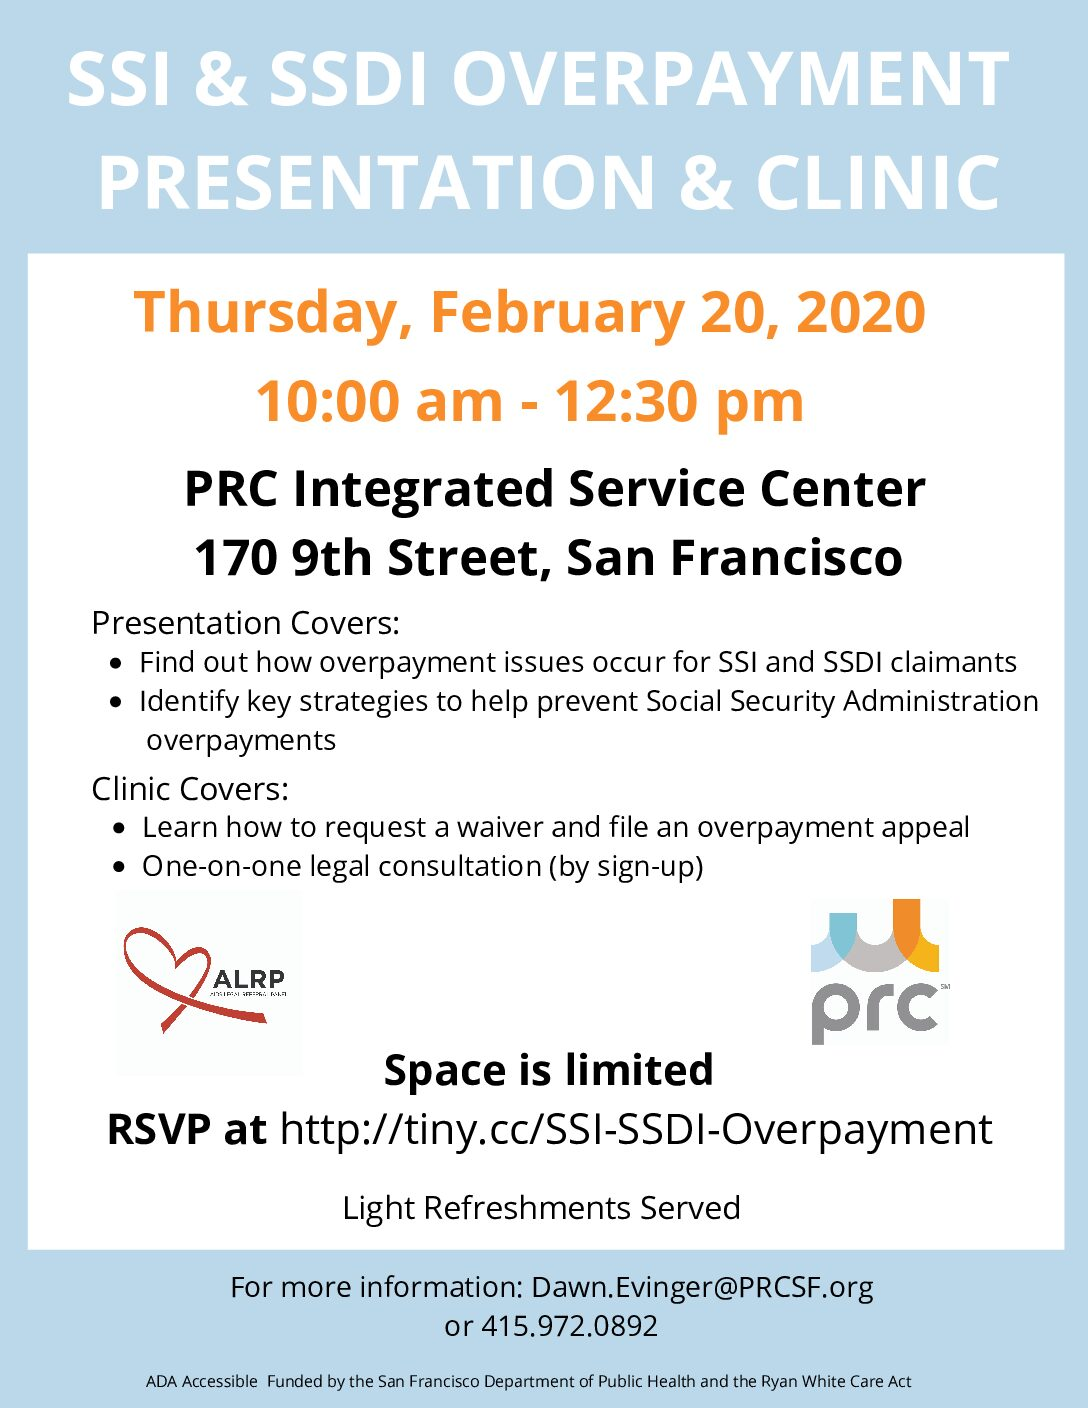 SSI & SSDI Overpayment Presentation and Clinic